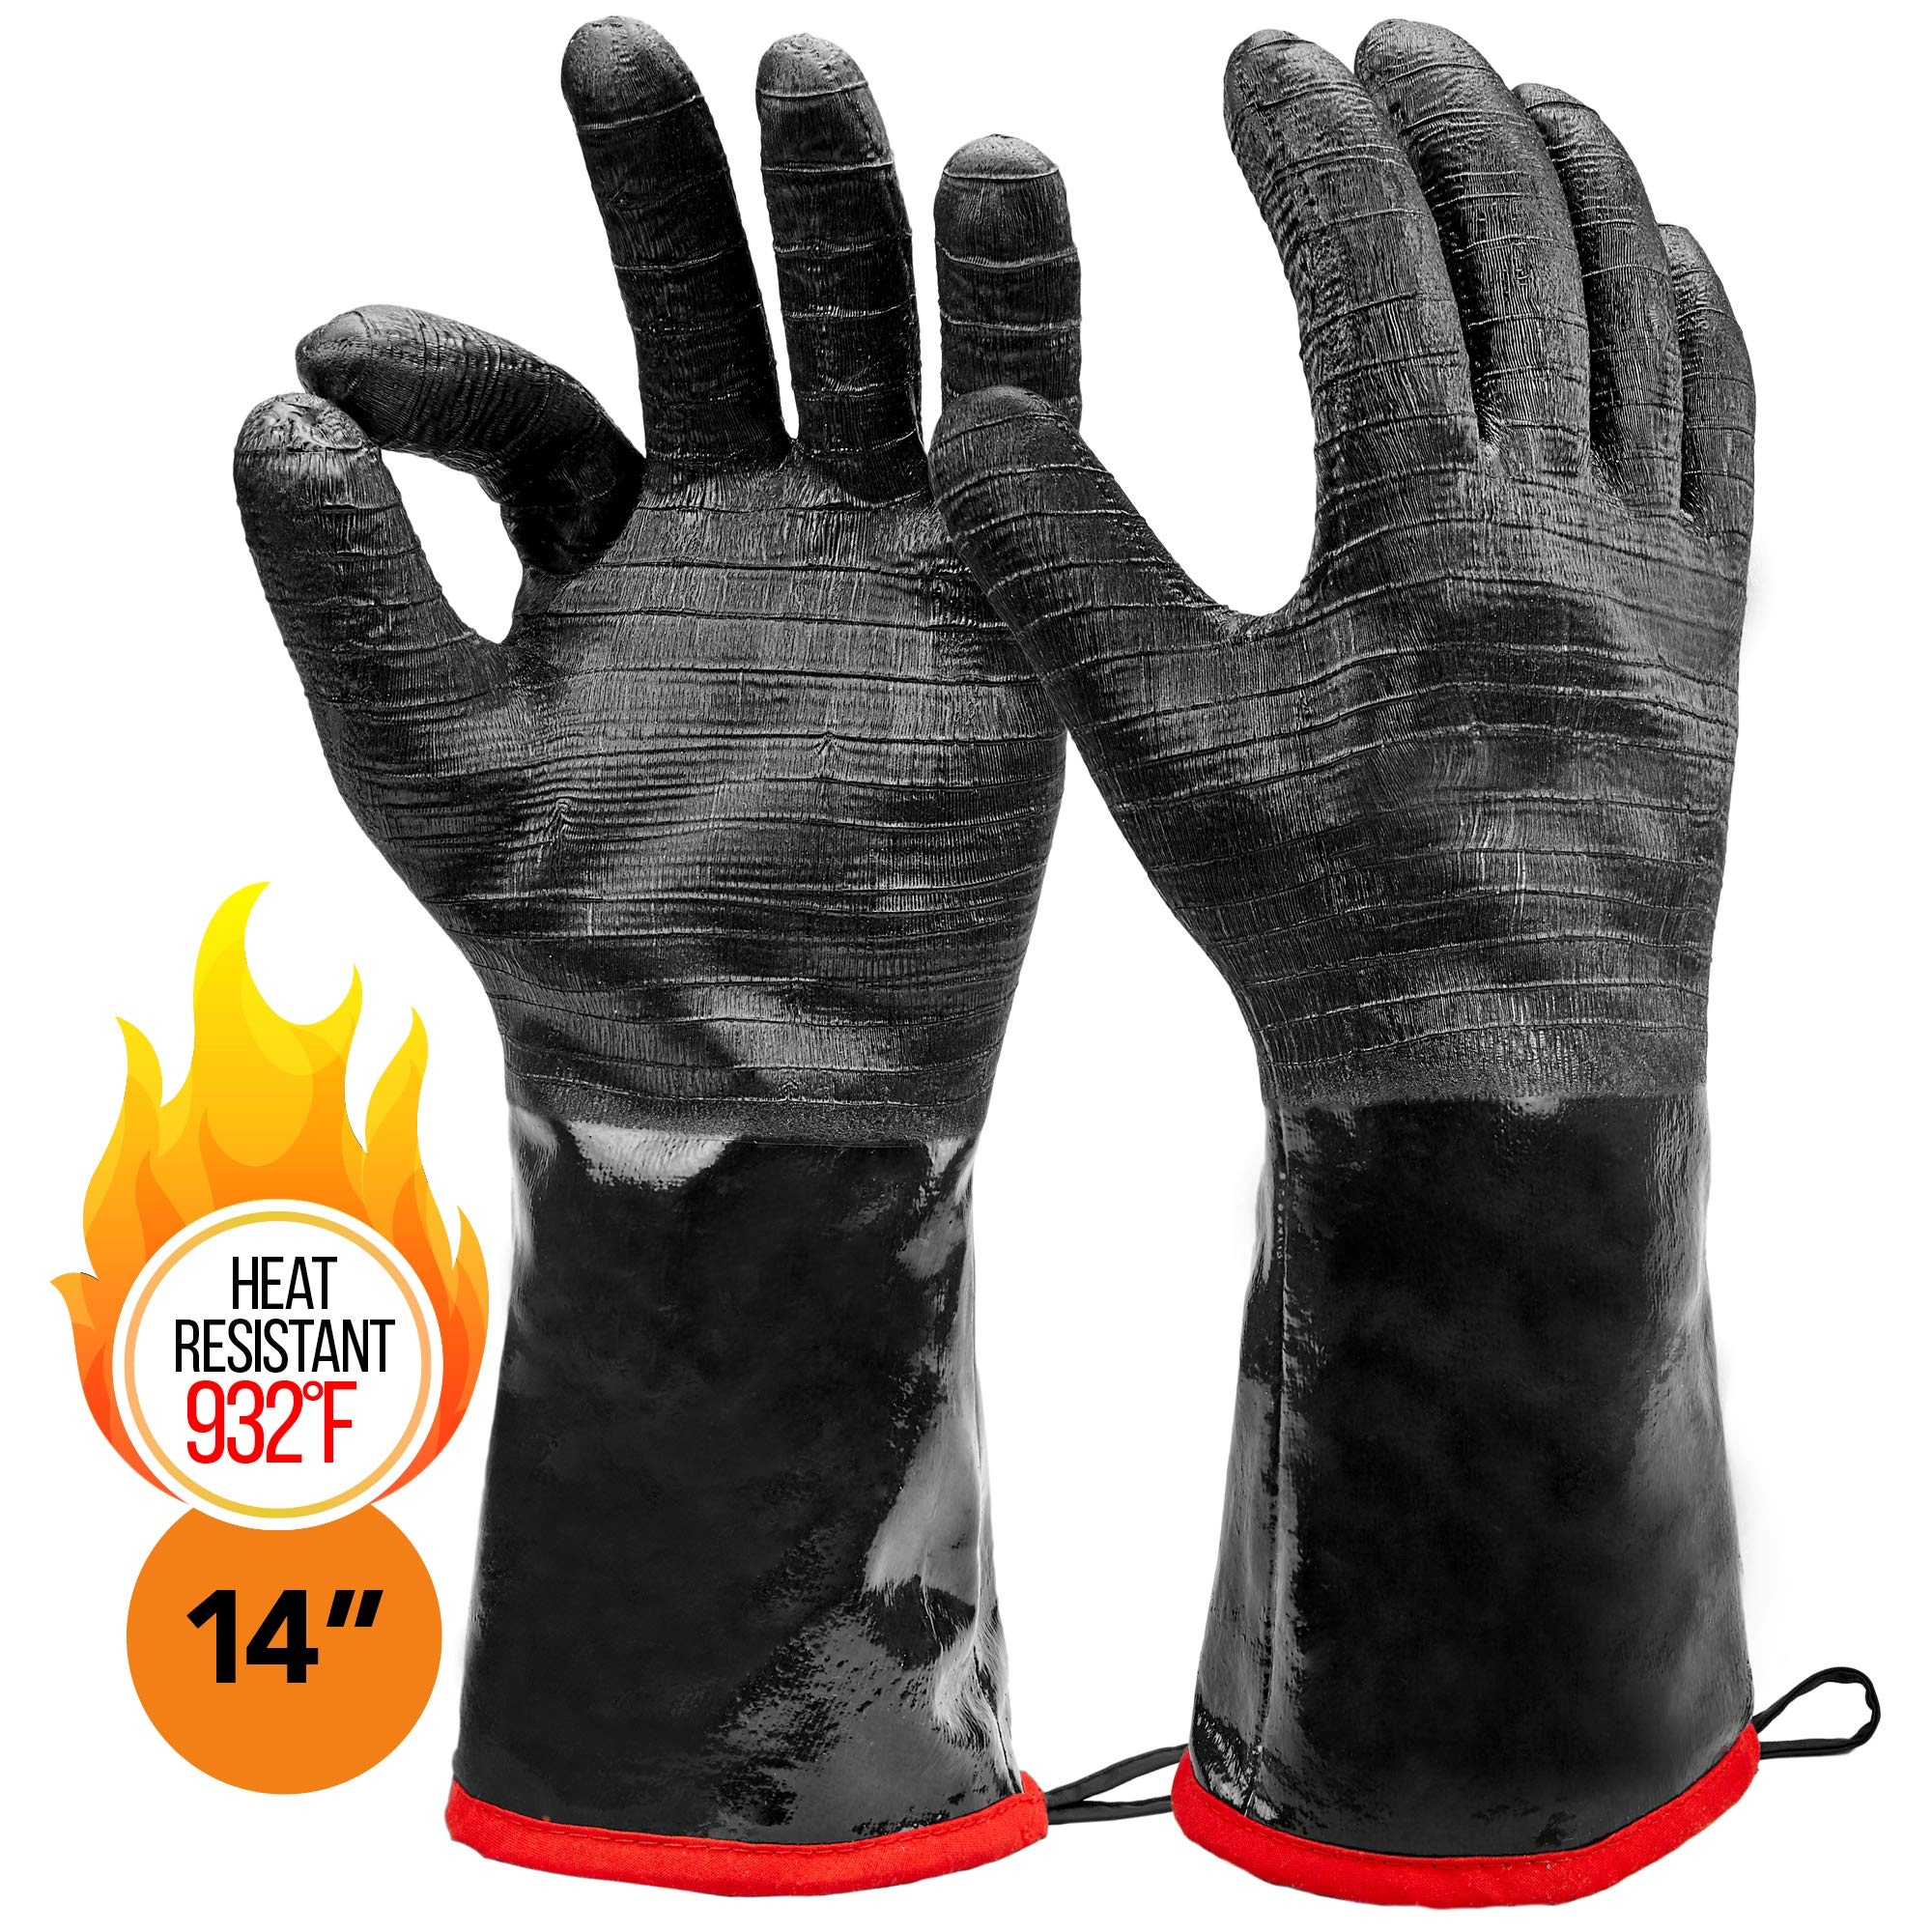 Heatsistance Heat Resistant BBQ Gloves, 14'' Long Sleeve, Large - Textured Grip to Handle Wet, Greasy or Oily Foods - Fire and Food Safe Turkey Fryer Oven Mitts for Smoker, Grills and Barbecue